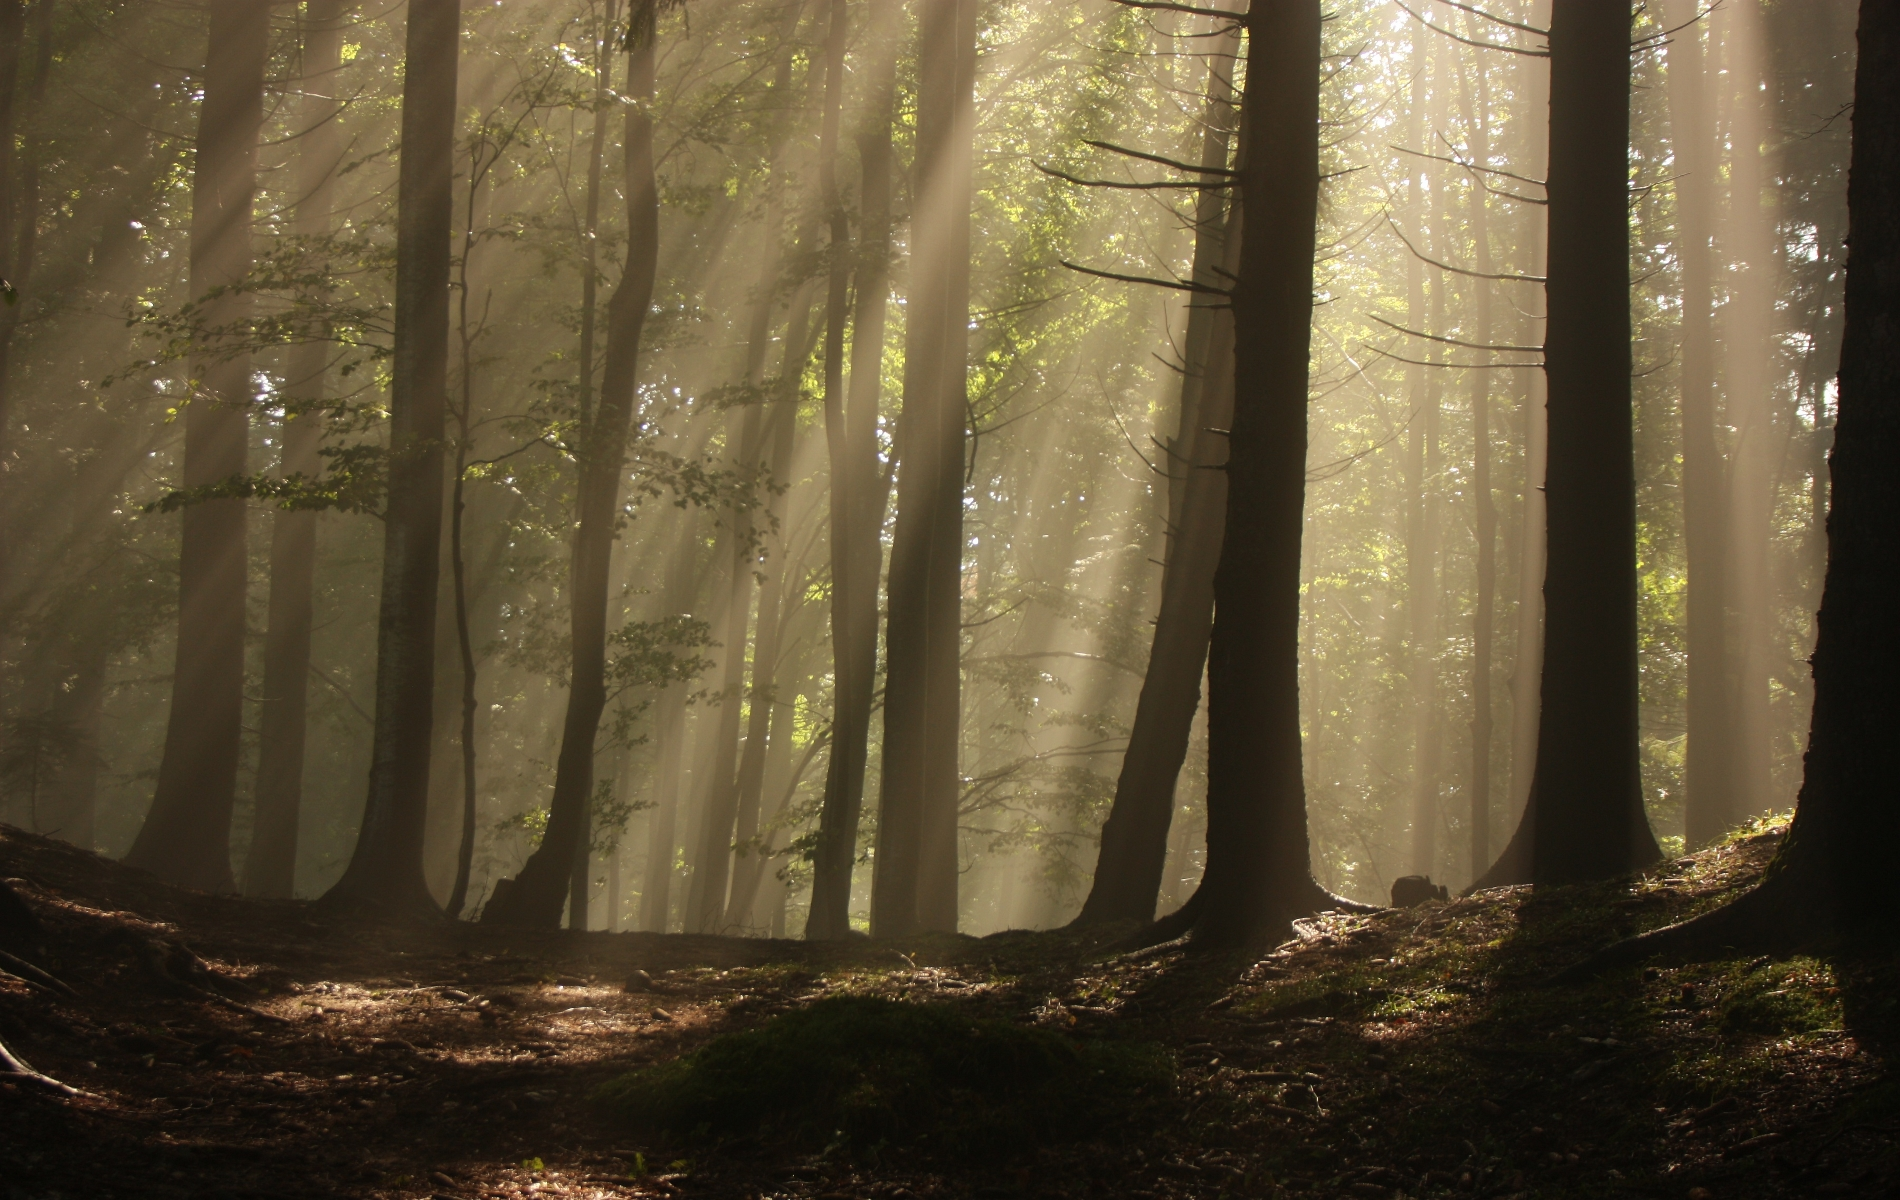 File:Nicubunu-f14-backgrounds-submission-Magic-forest.jpg